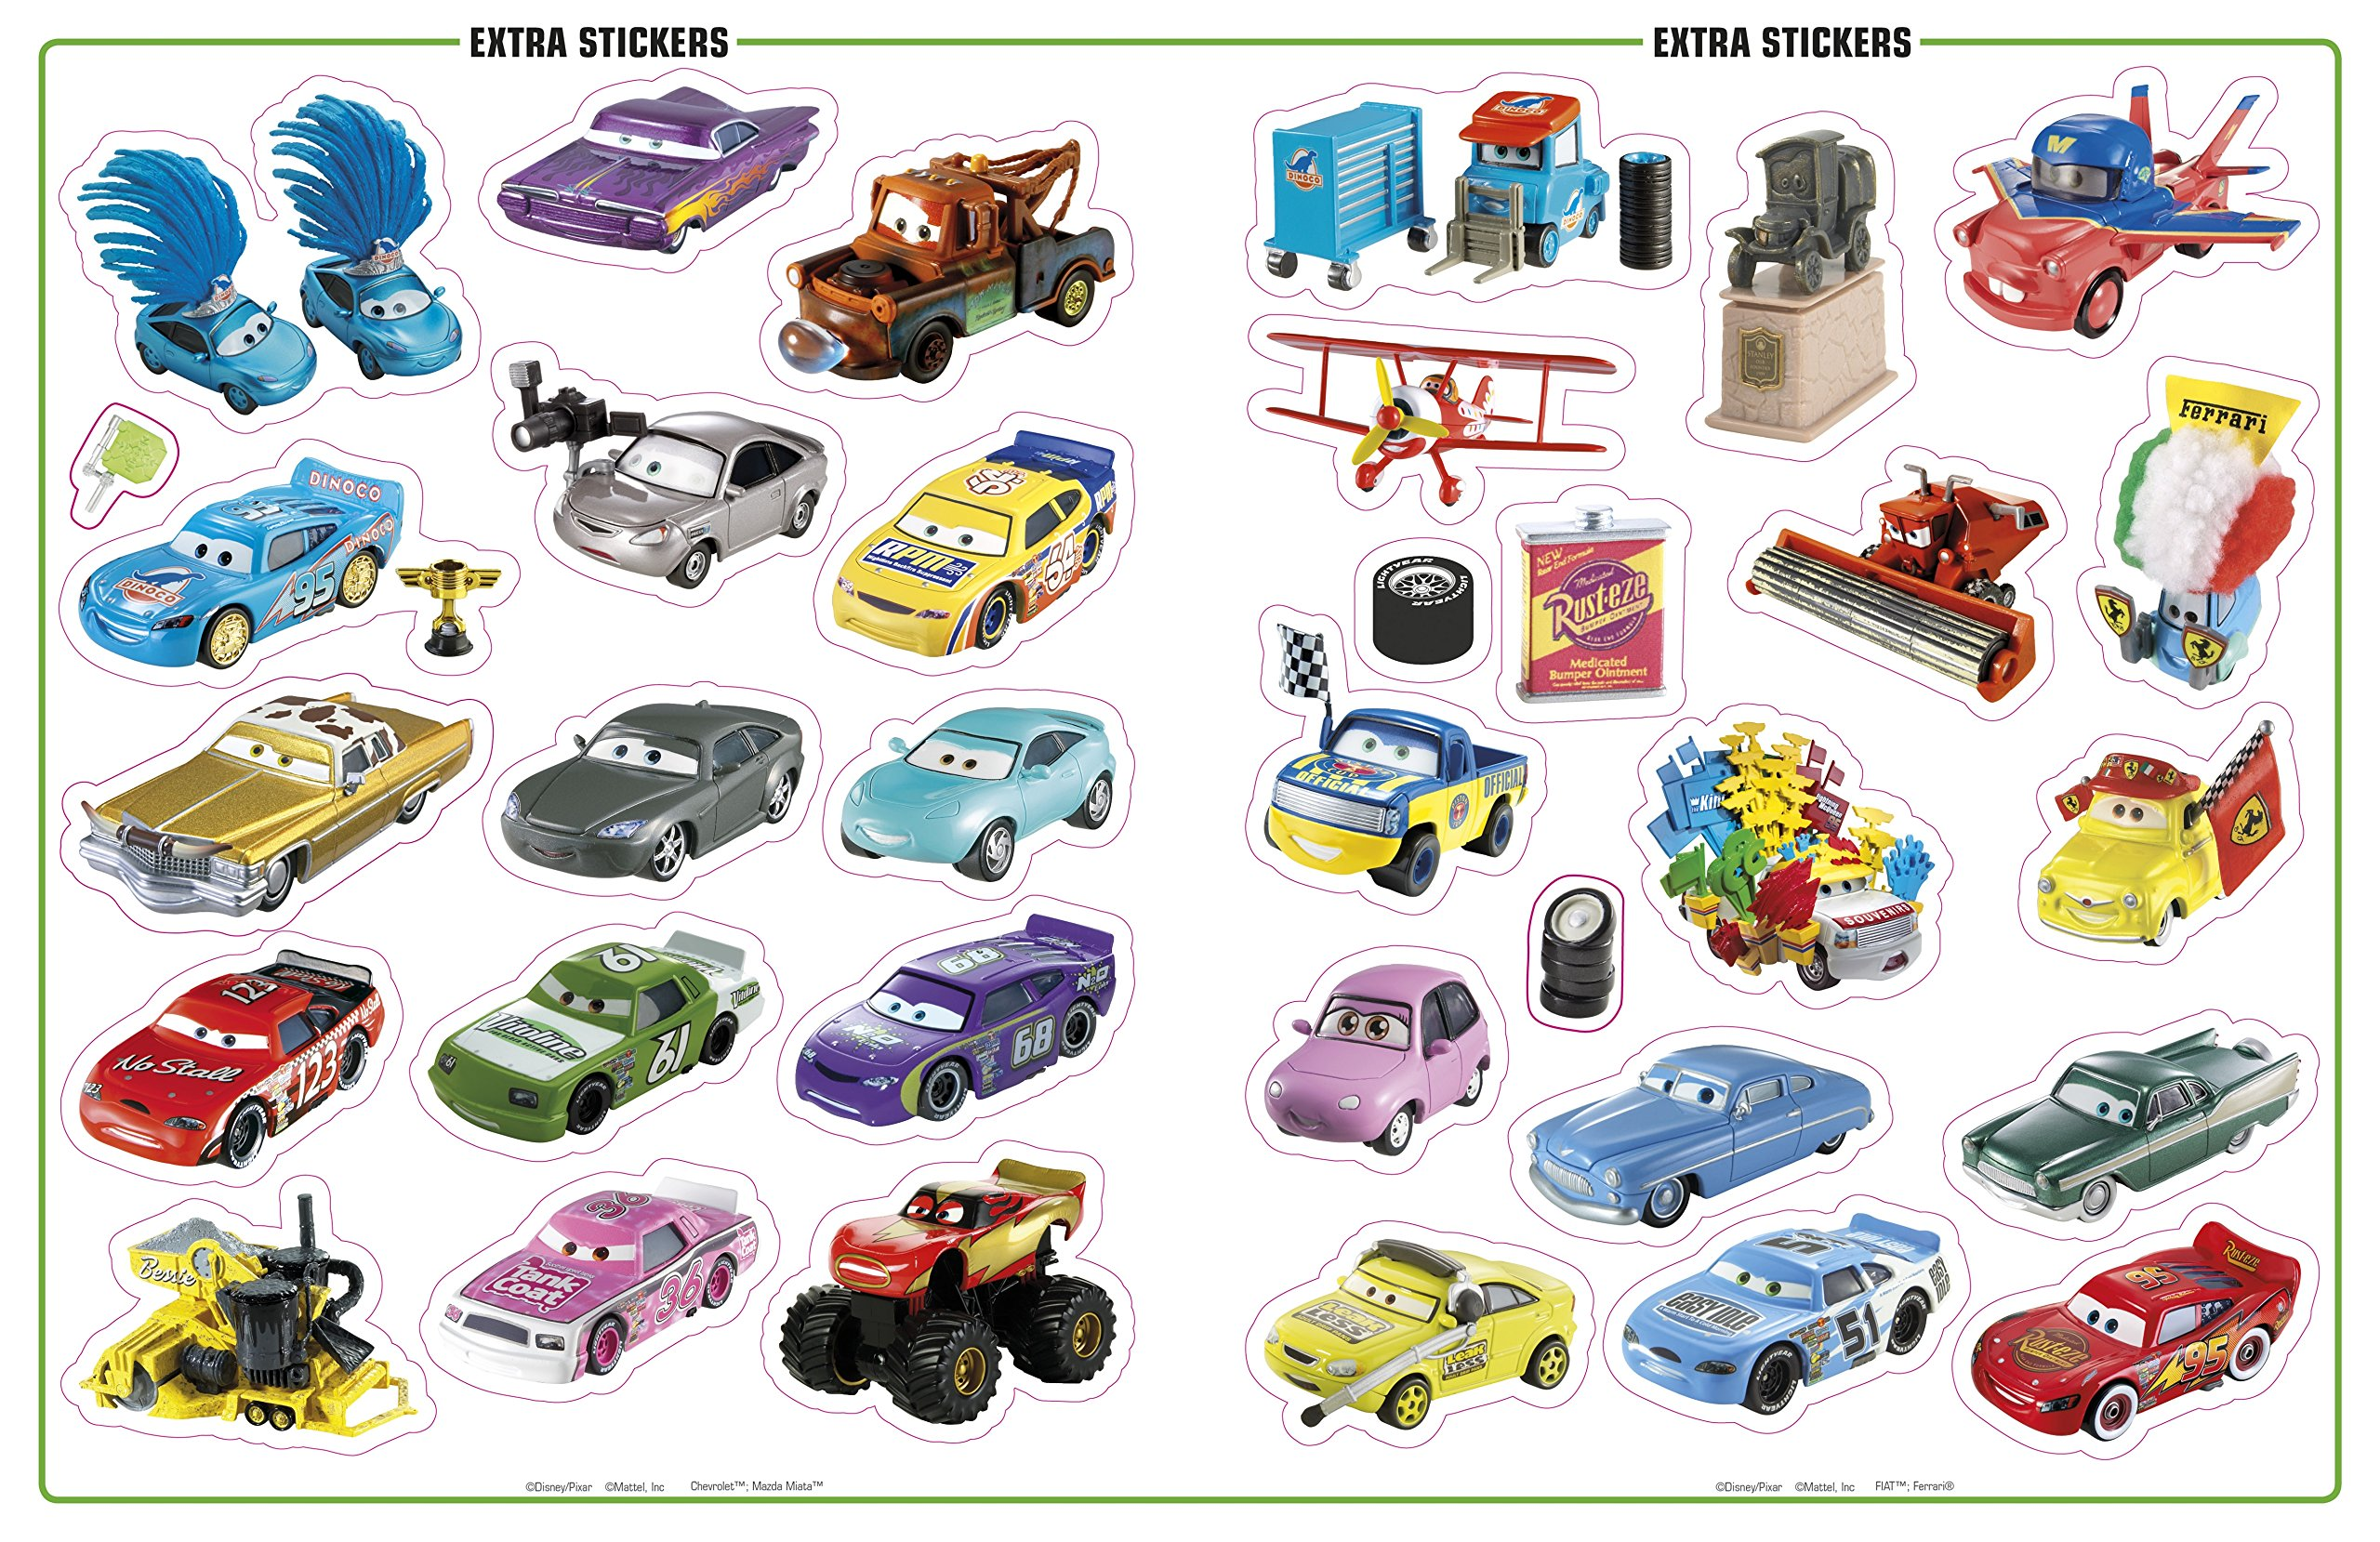 Ultimate Sticker Collection: Disney Pixar Cars (Ultimate Sticker Collections) by DK Publishing Dorling Kindersley (Image #5)